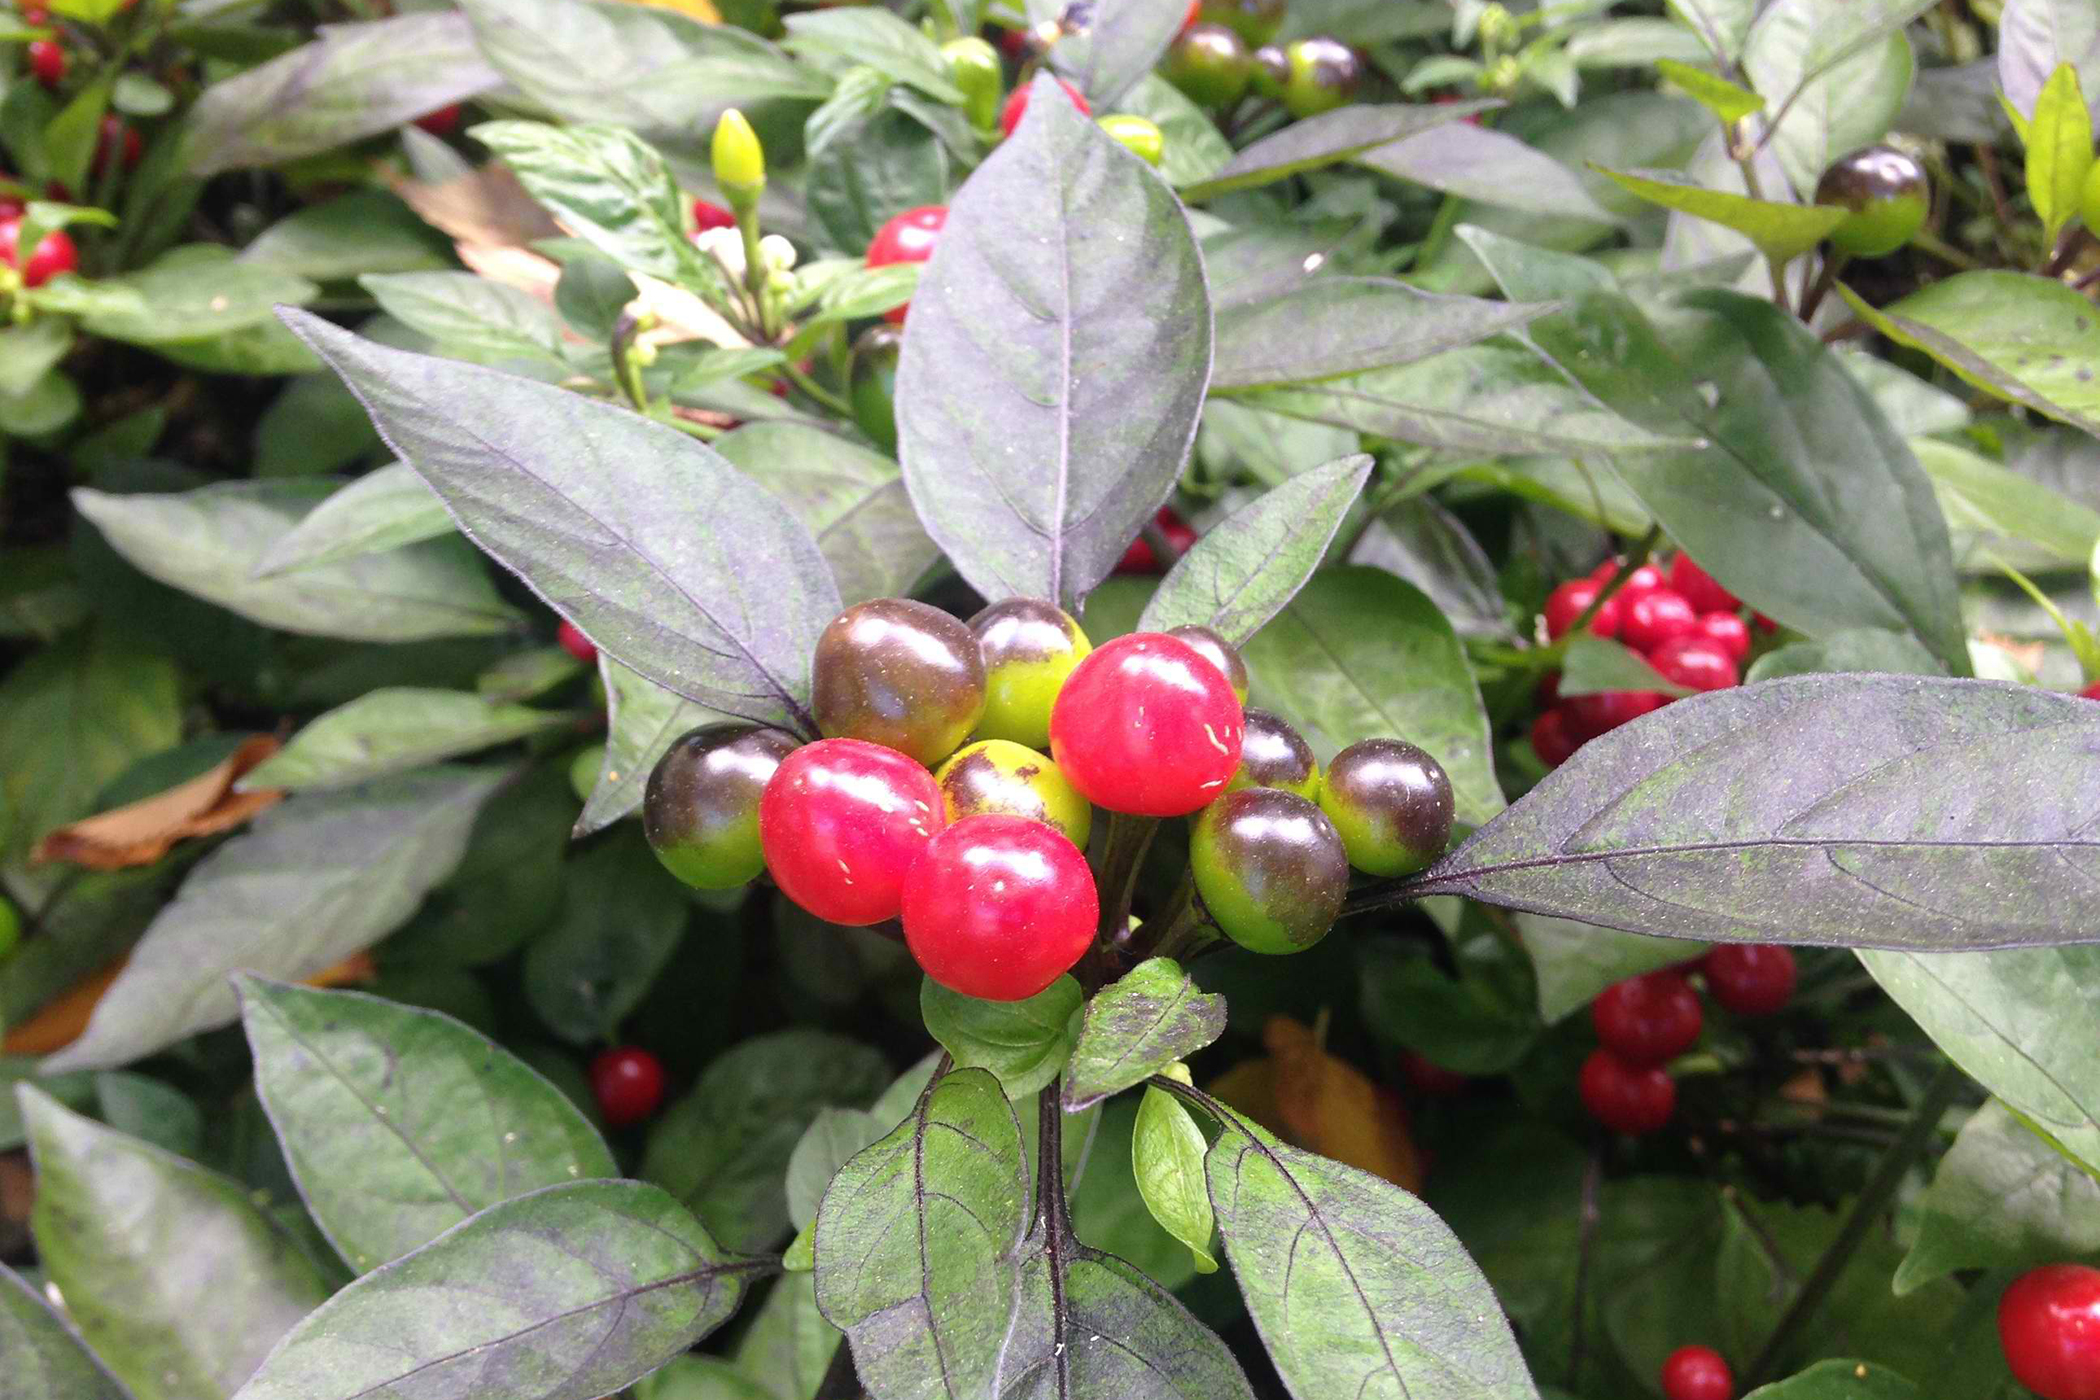 Winter Cherry Poisoning in Cats